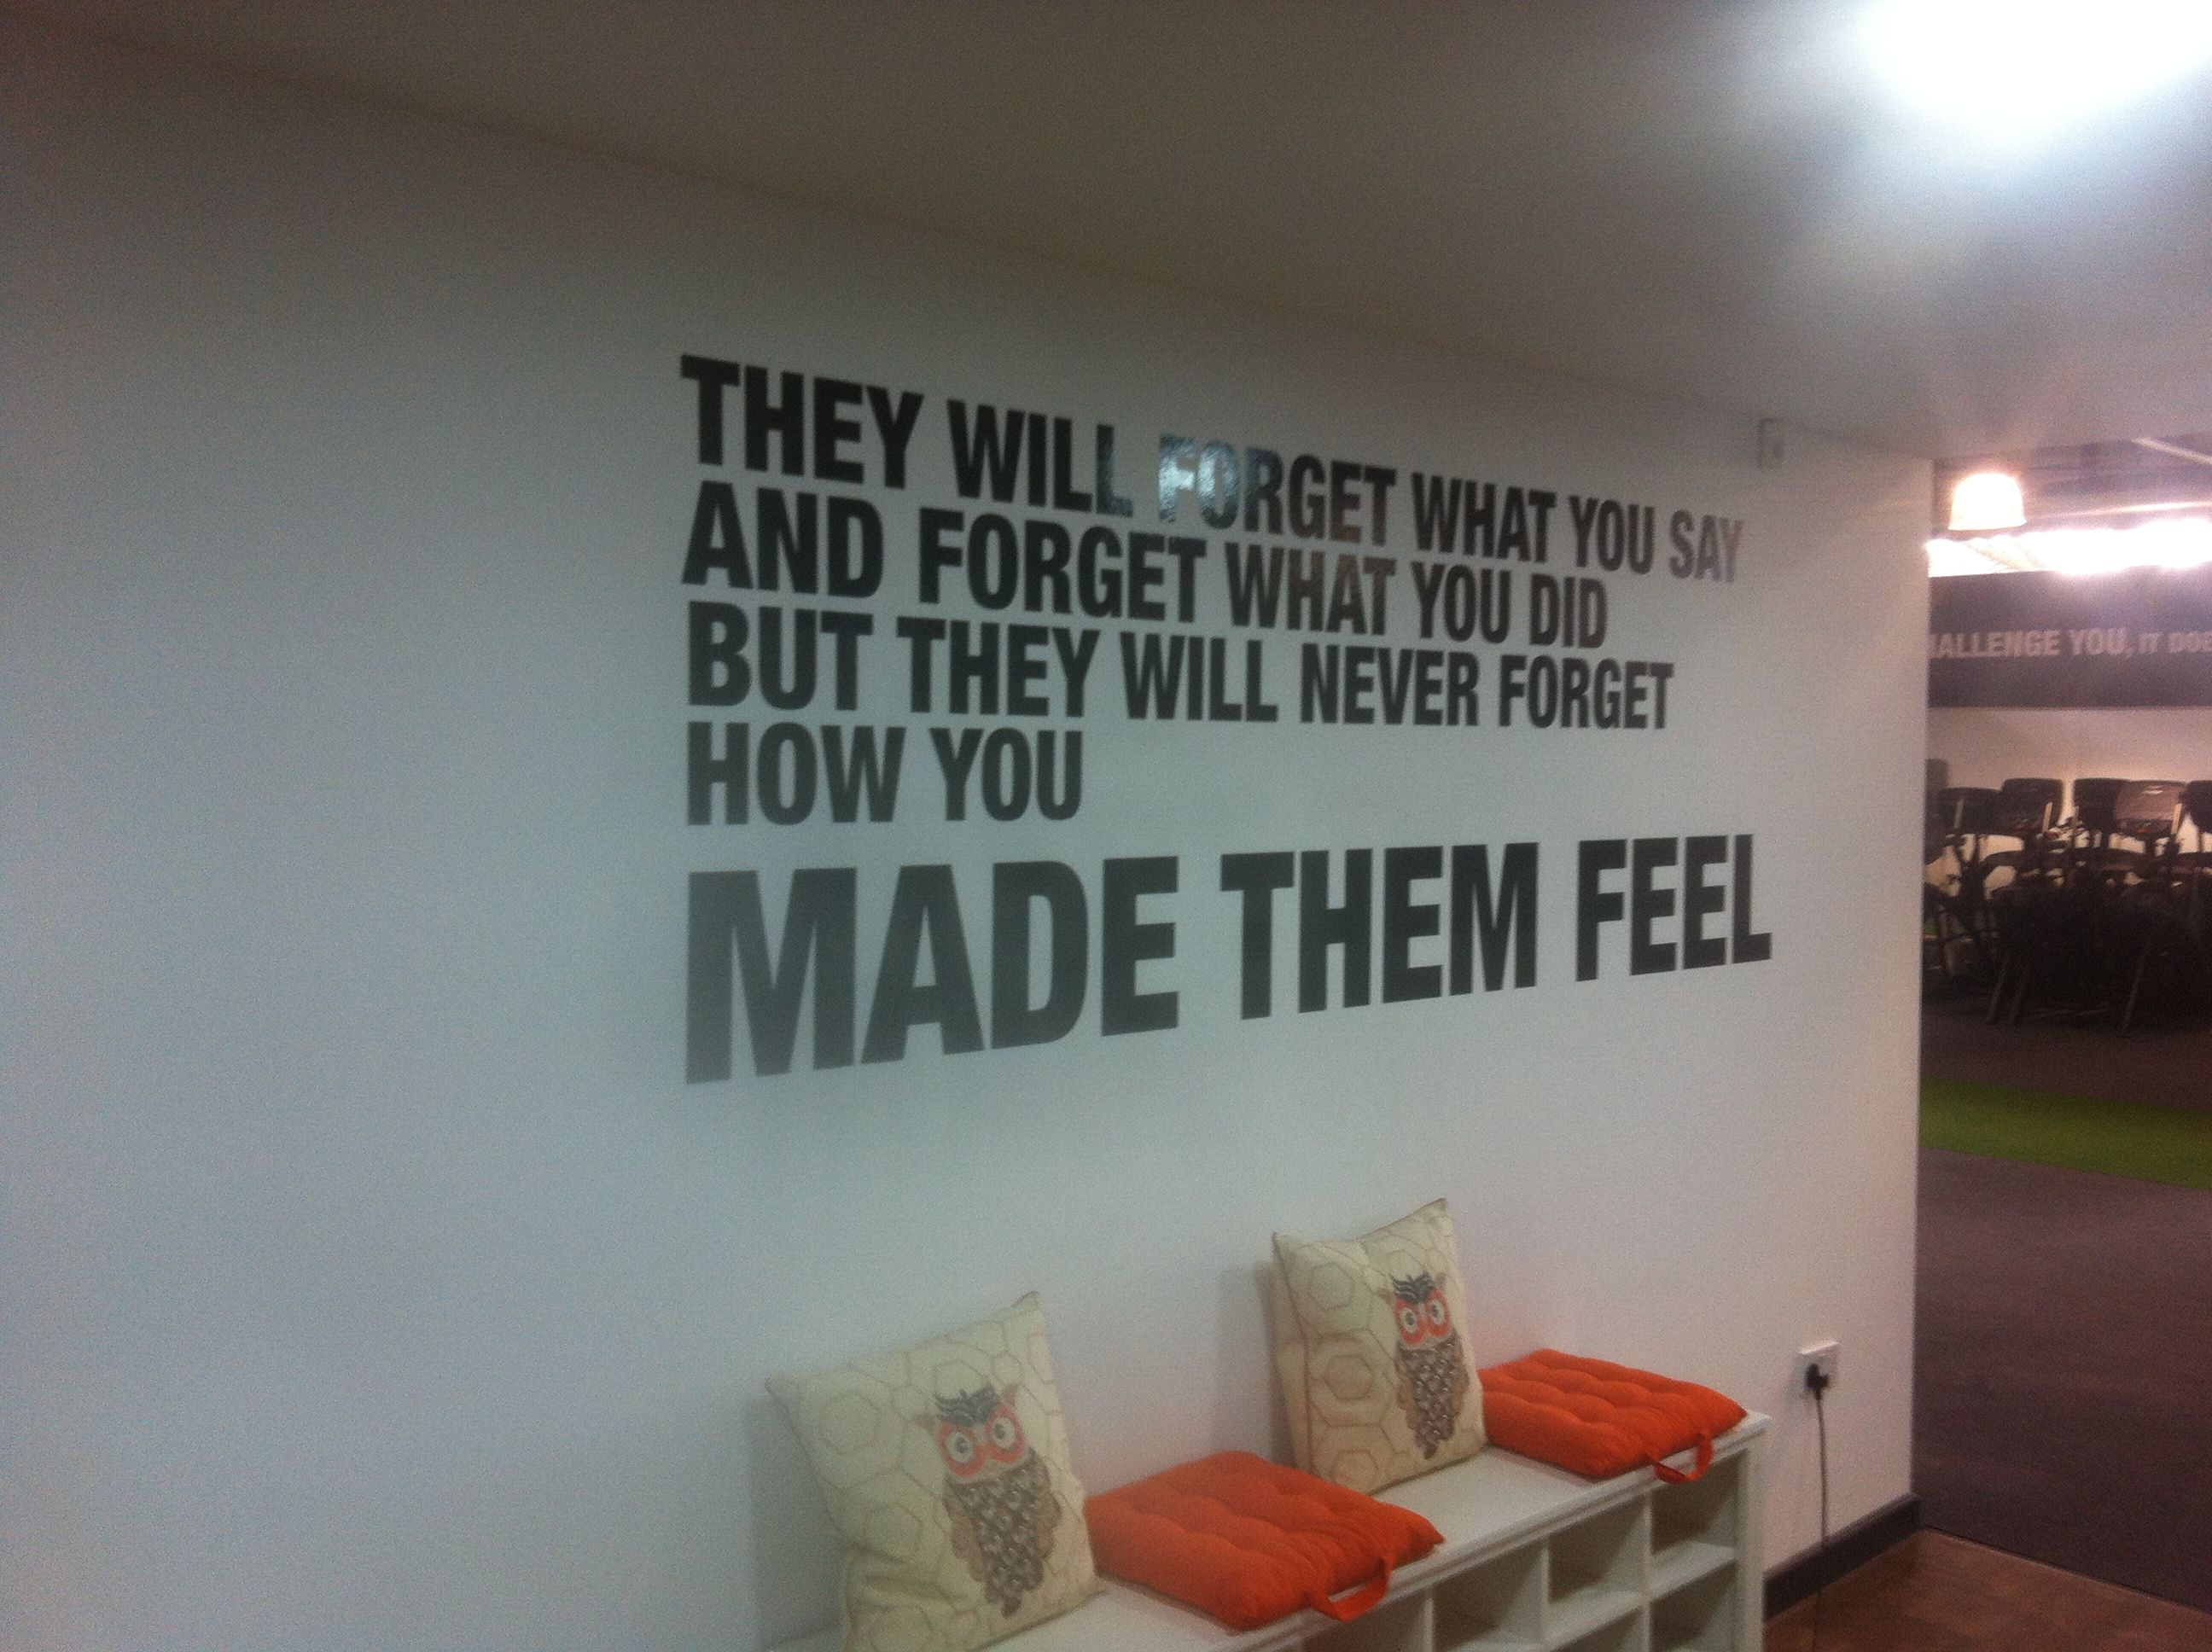 inspirational messages are brilliant. Here we Showcase inspiration with a fantastically applied wall graphic